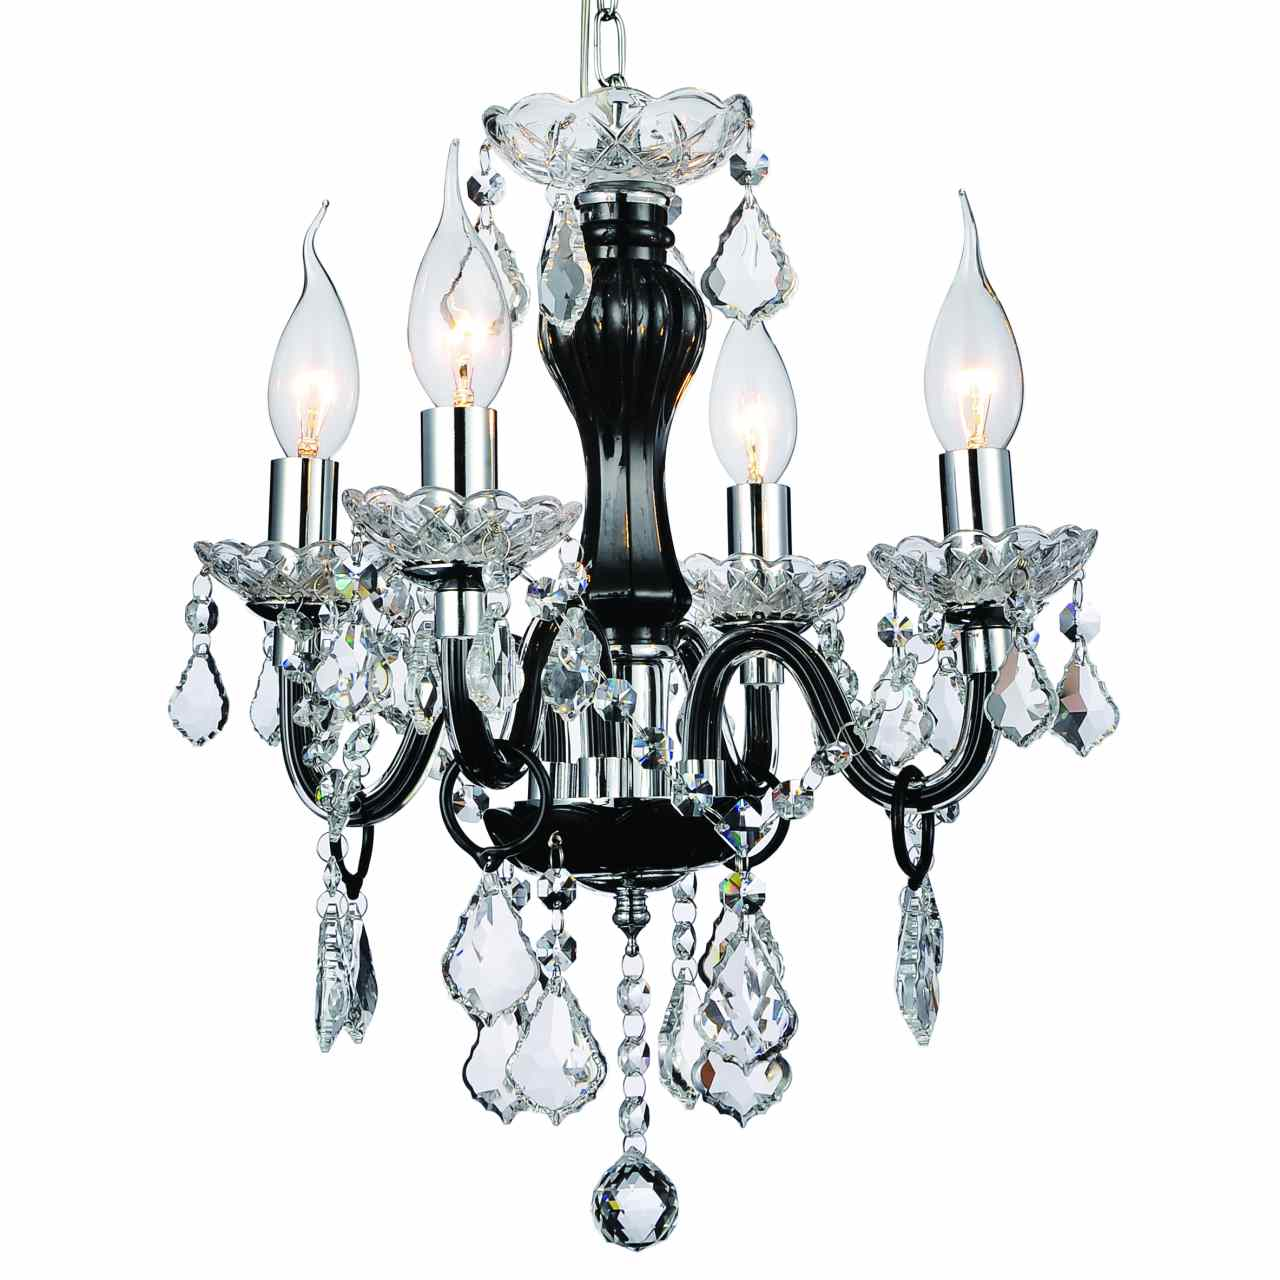 Brizzo lighting stores 14 victorian traditional crystal round mini chandelier jet black frame - Traditional crystal chandeliers ...